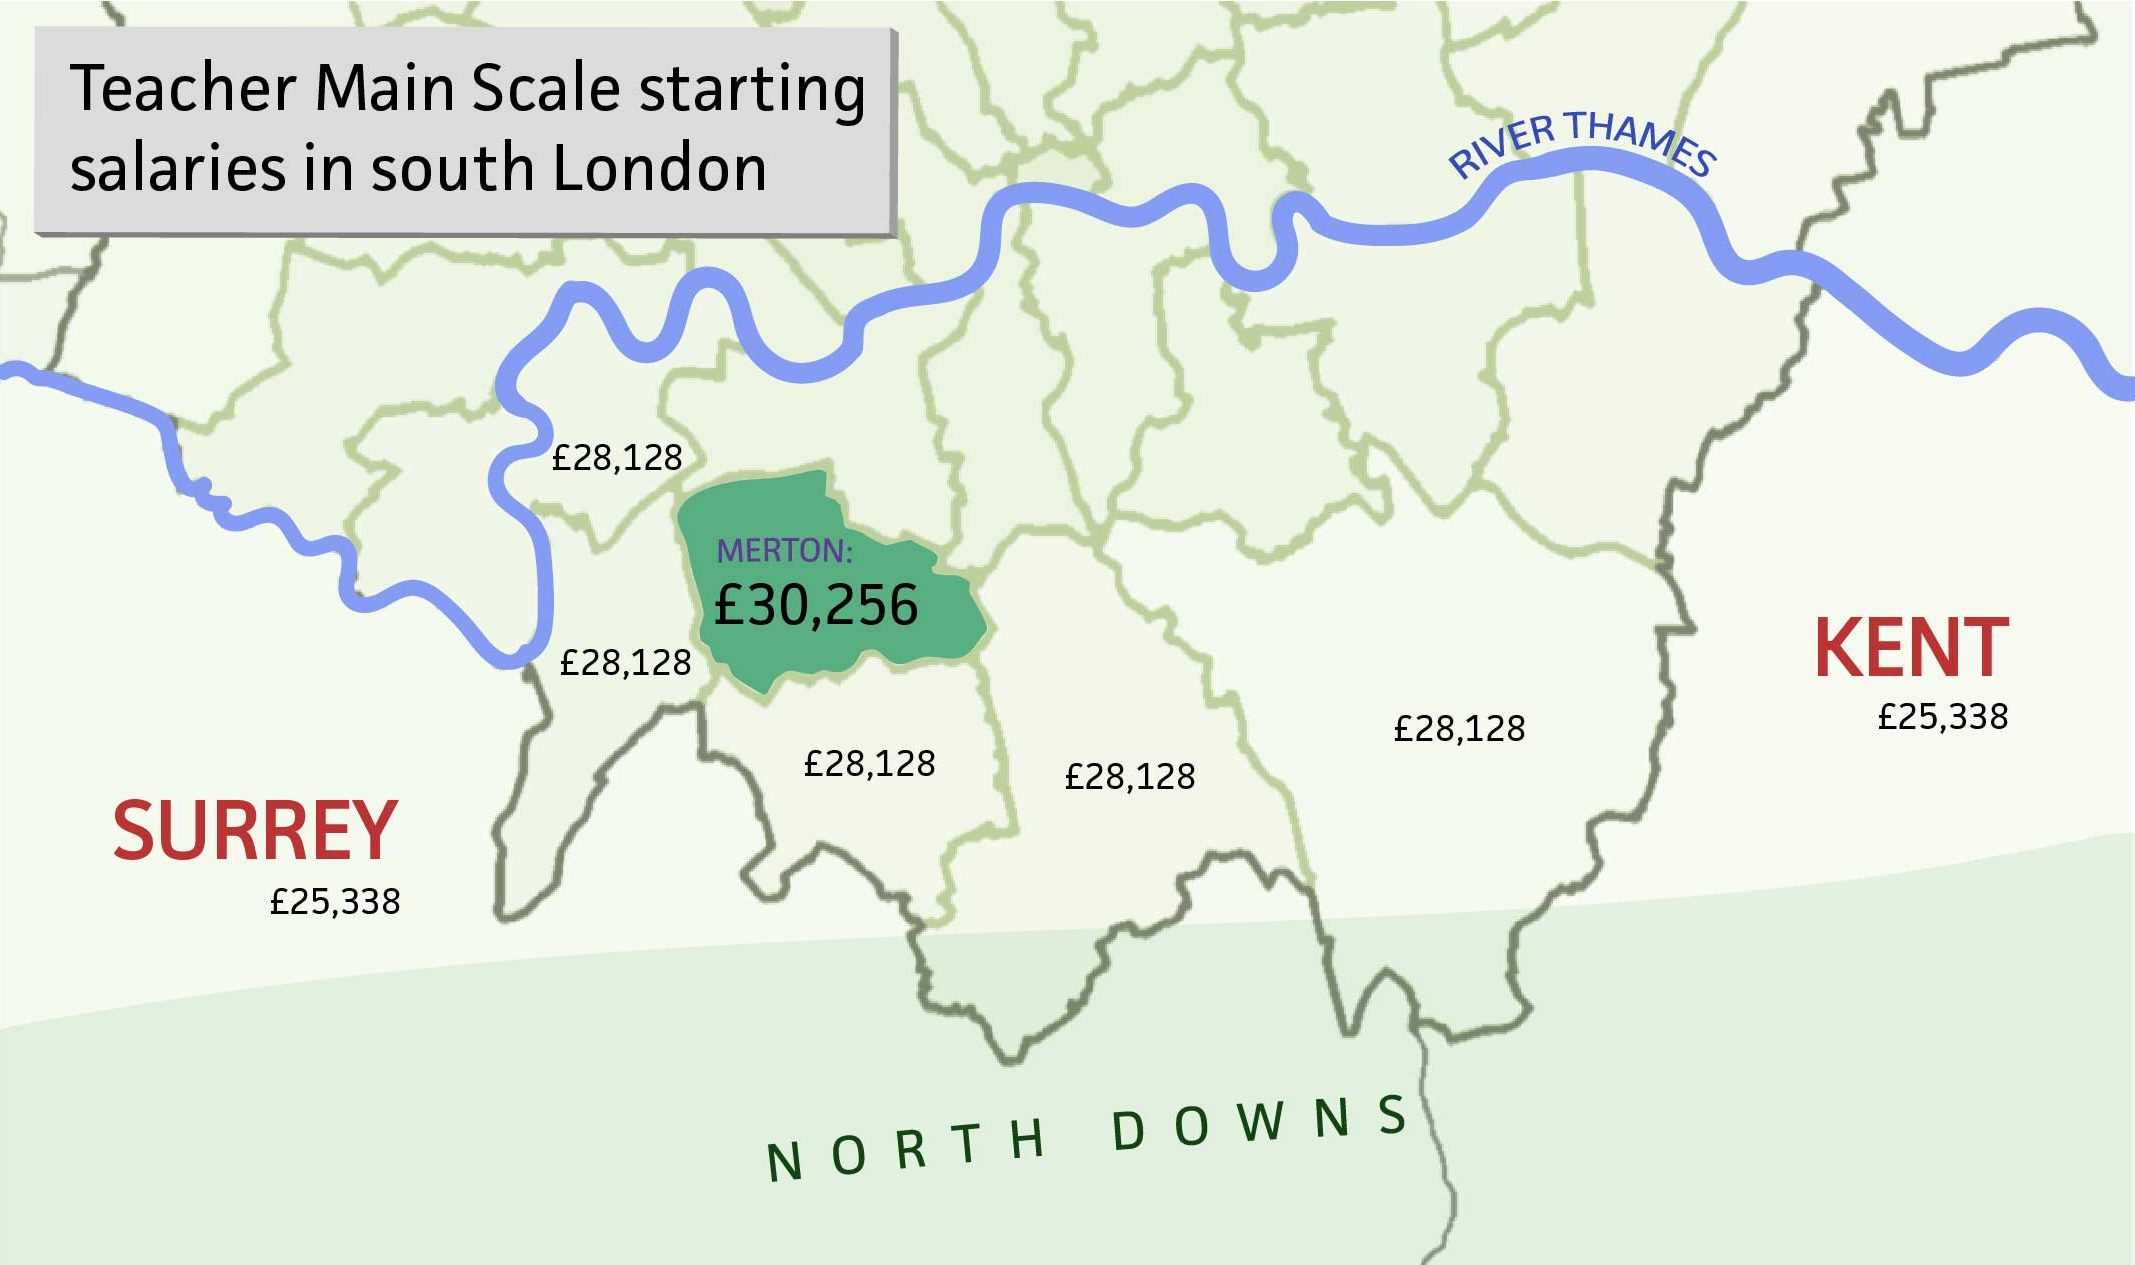 Pay map showing starting salary of £30,256 in Merton compared with lower pay in surrounding boroughs